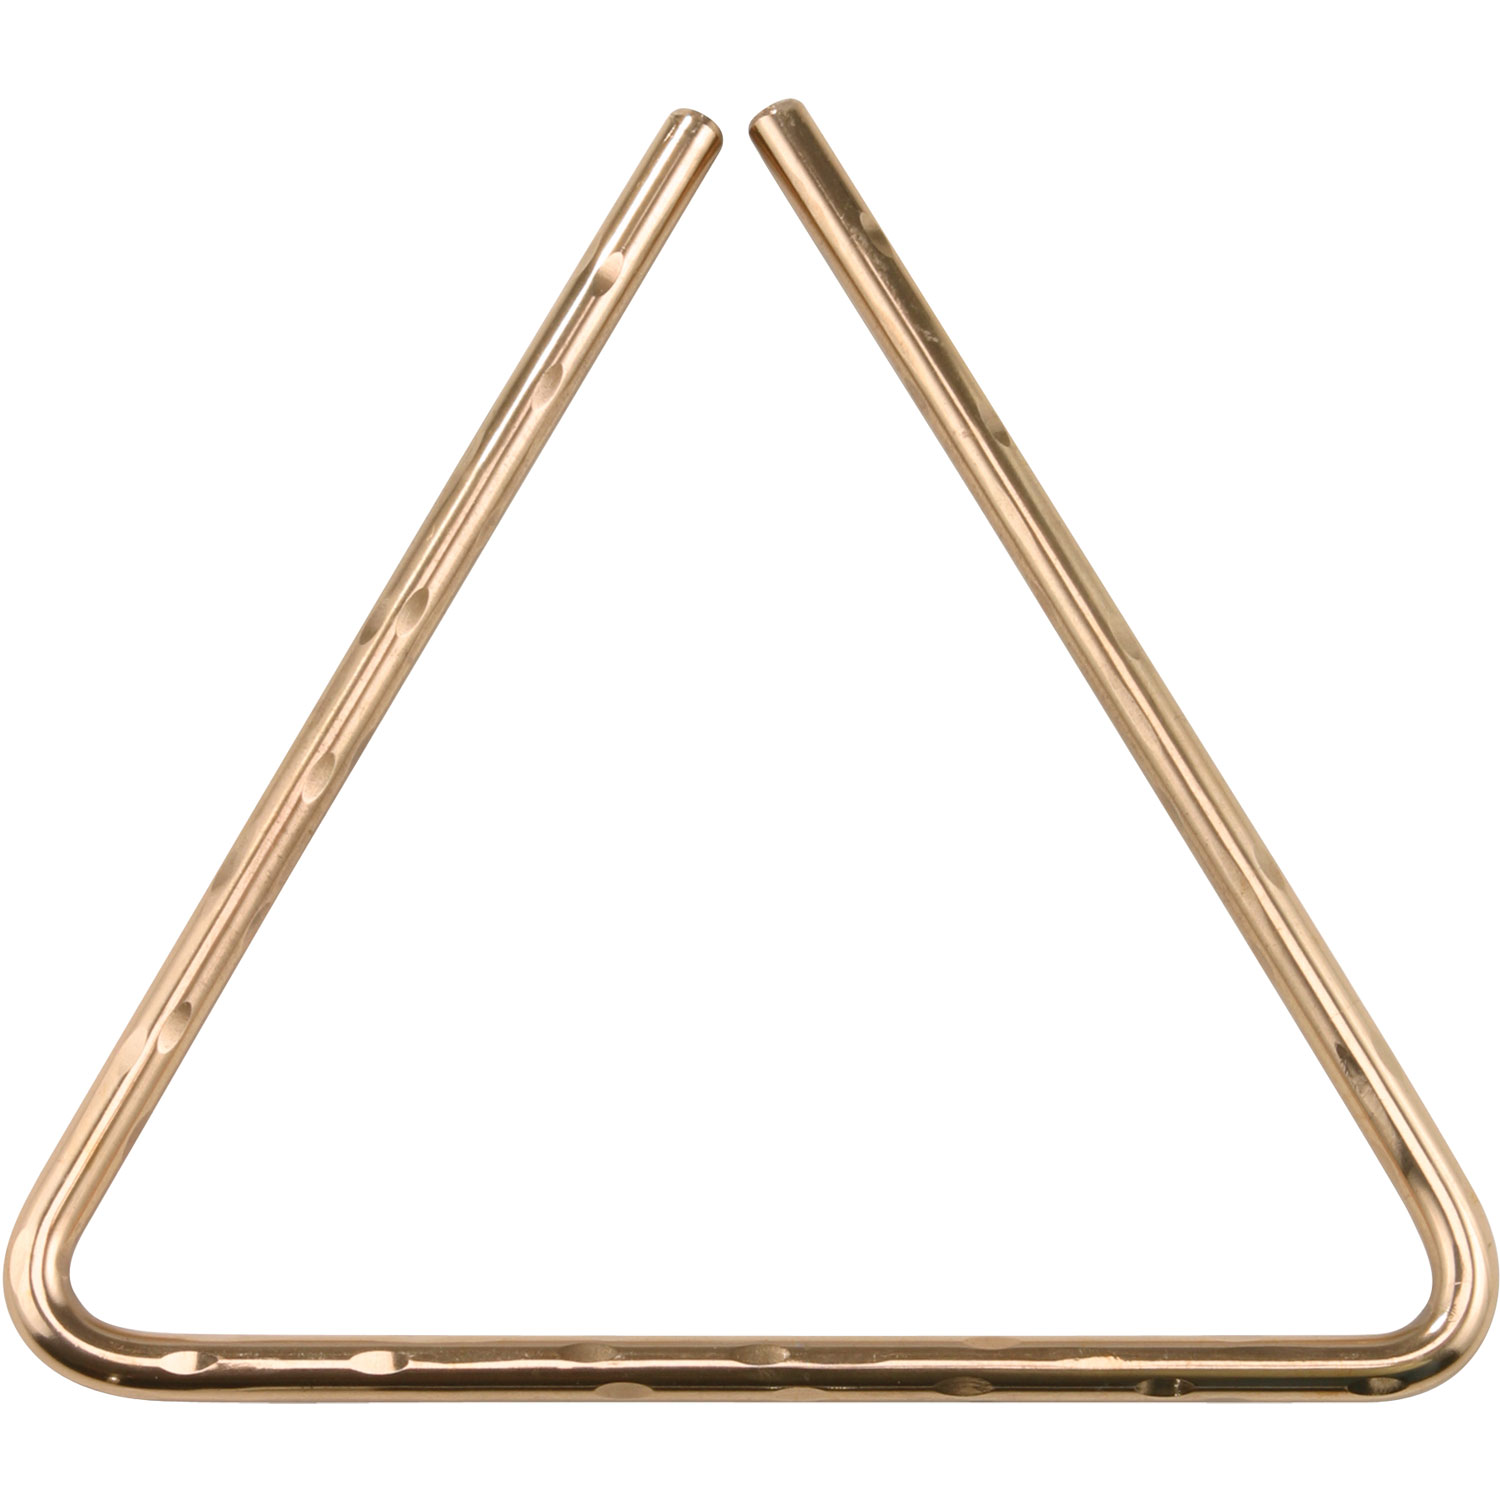 "Sabian 6"" Hand Hammered Bronze Triangle"